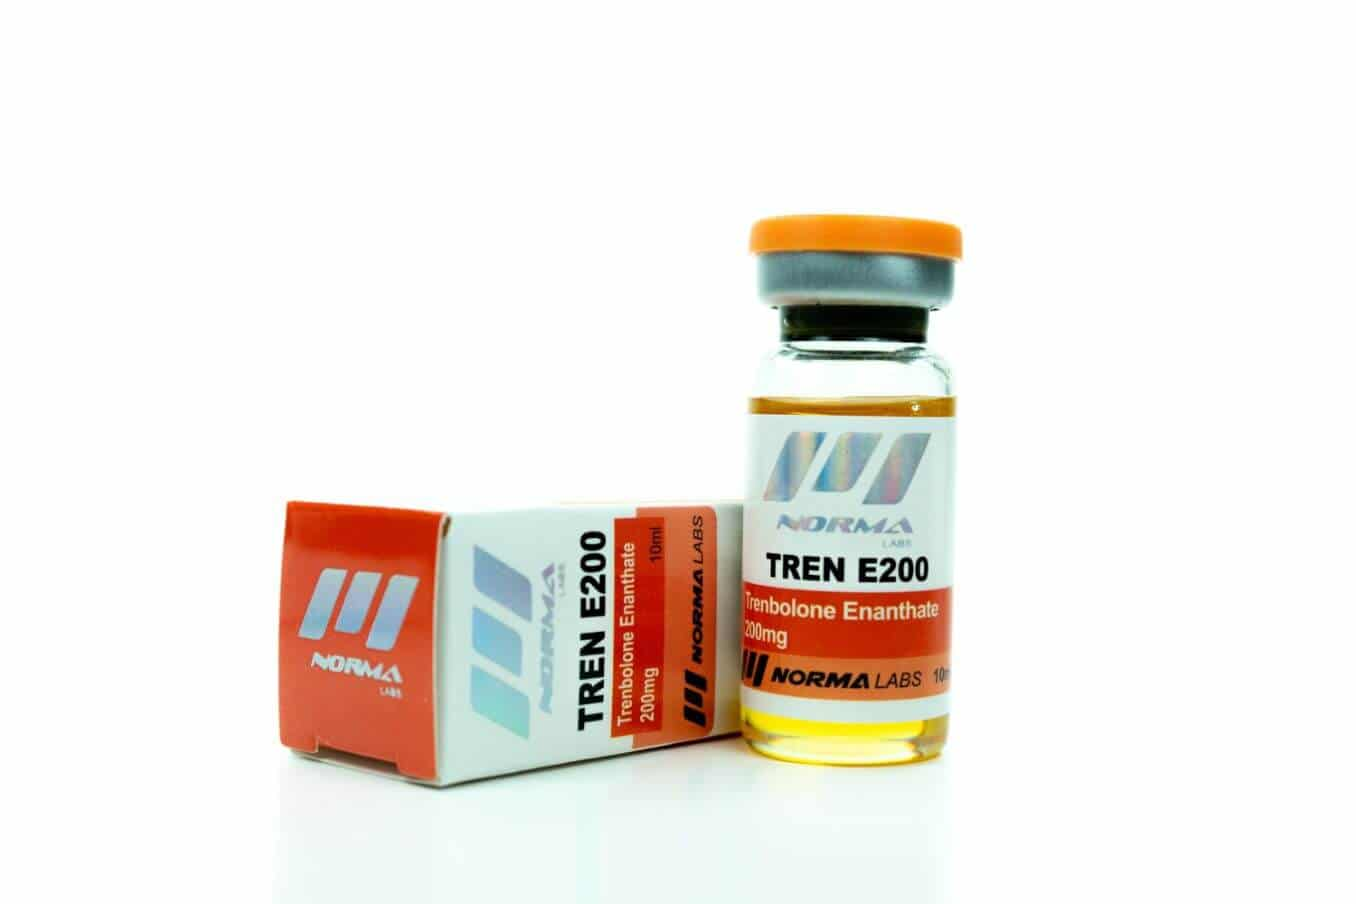 Trenbolone Enanthate E200 Norma